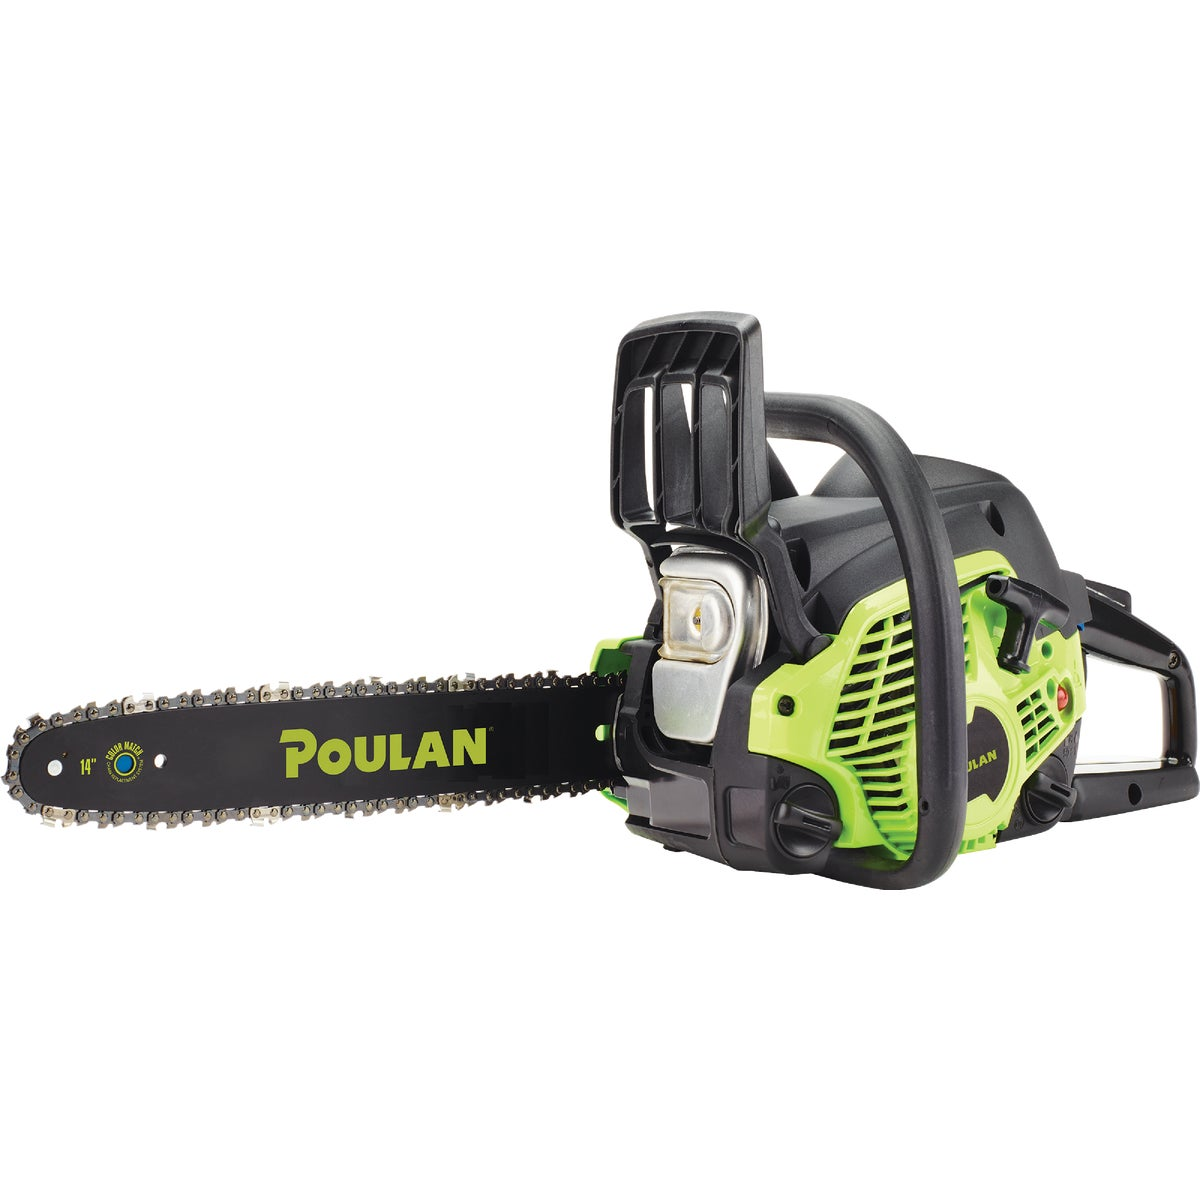 "14"" 33CC GAS CHAINSAW"